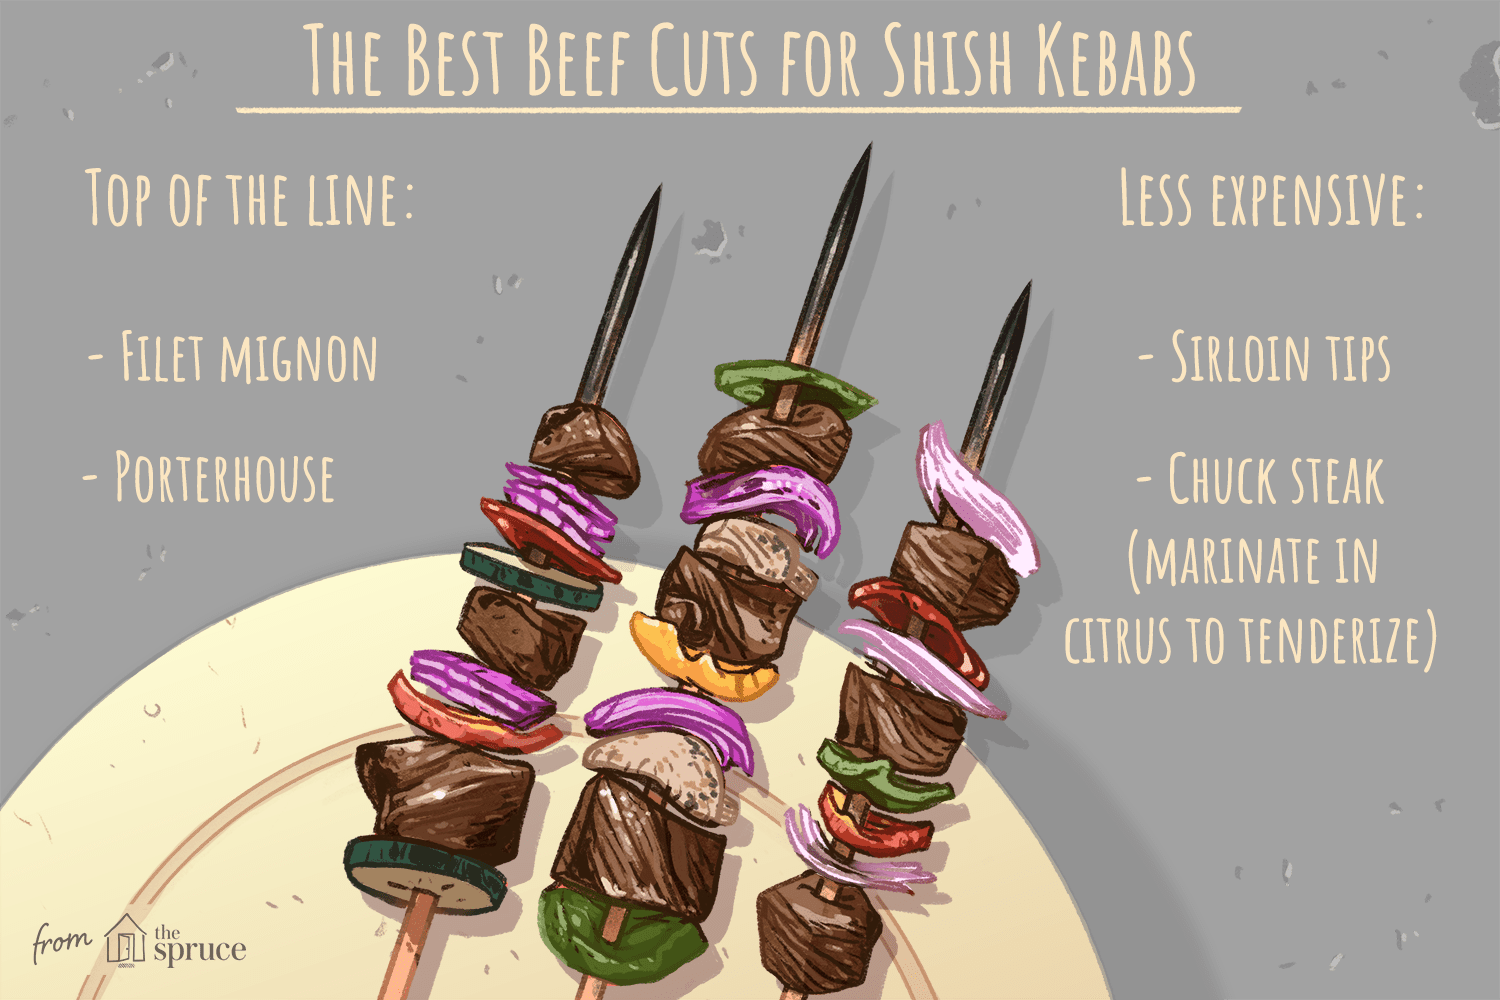 illustration that shows the best beef cuts for shish kebabs